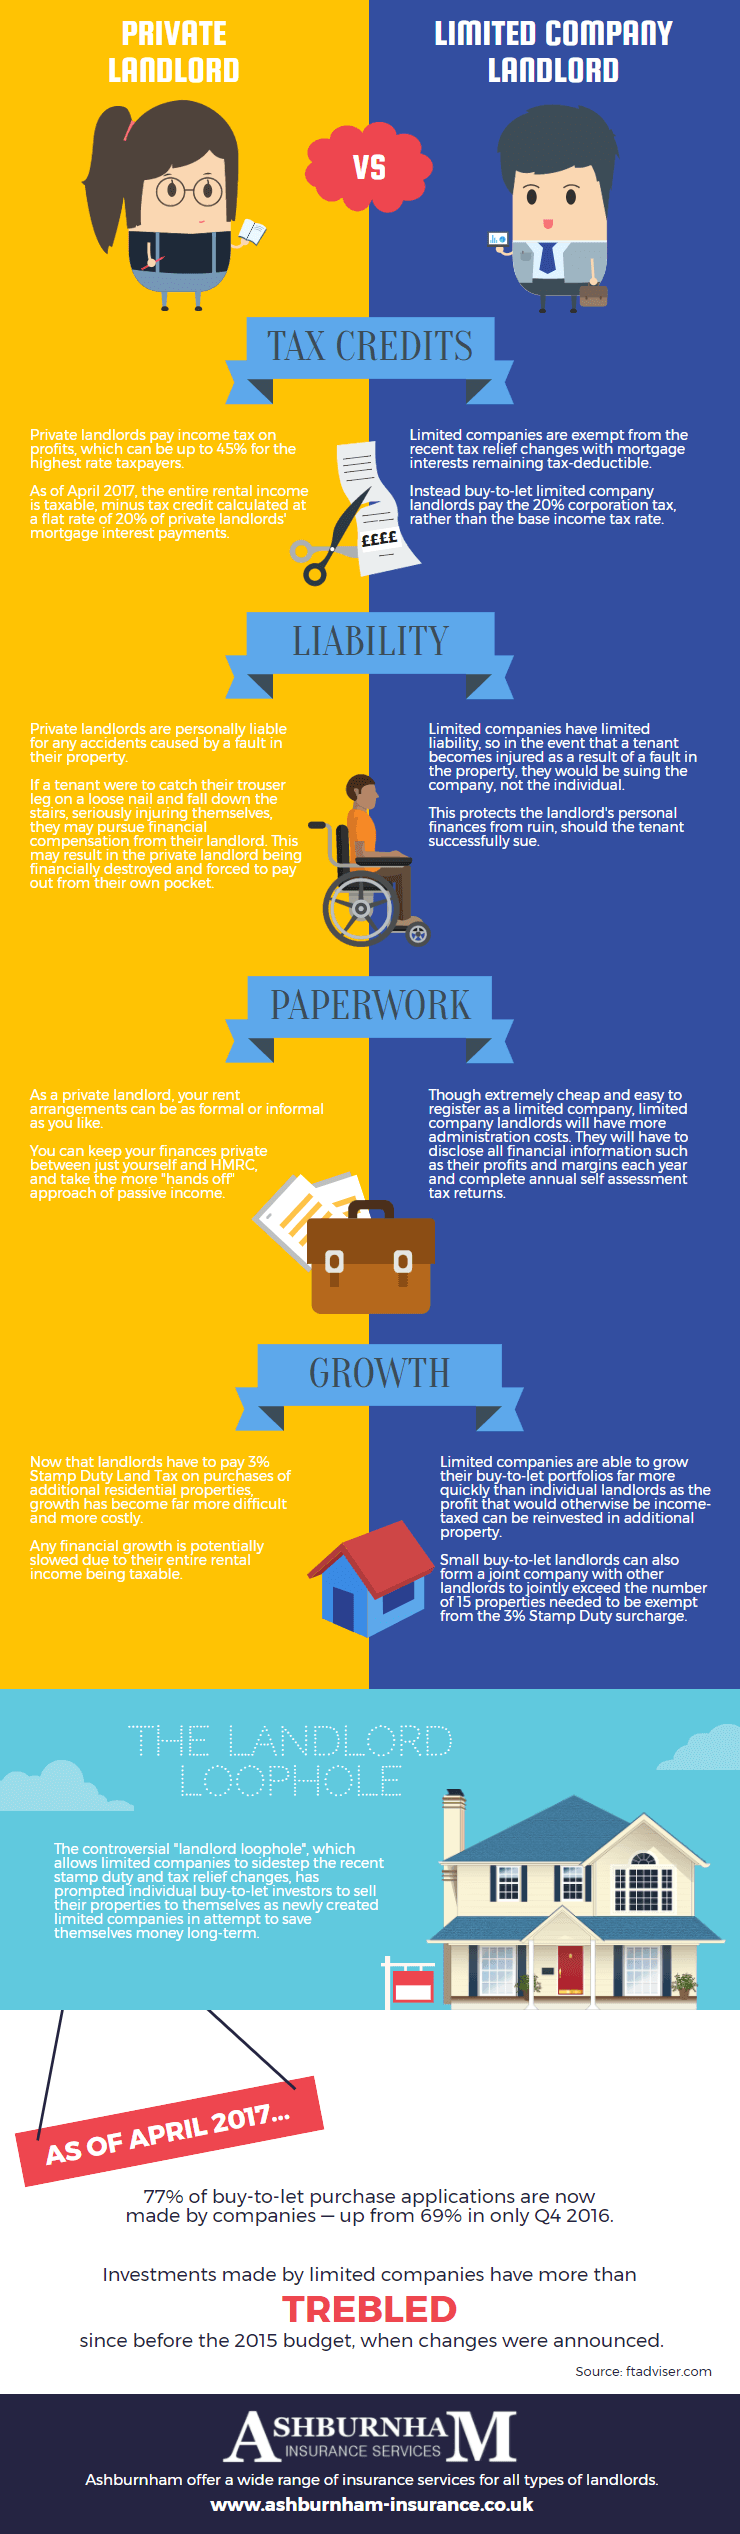 Private Landlord vs Limited Company Landlord Infographic